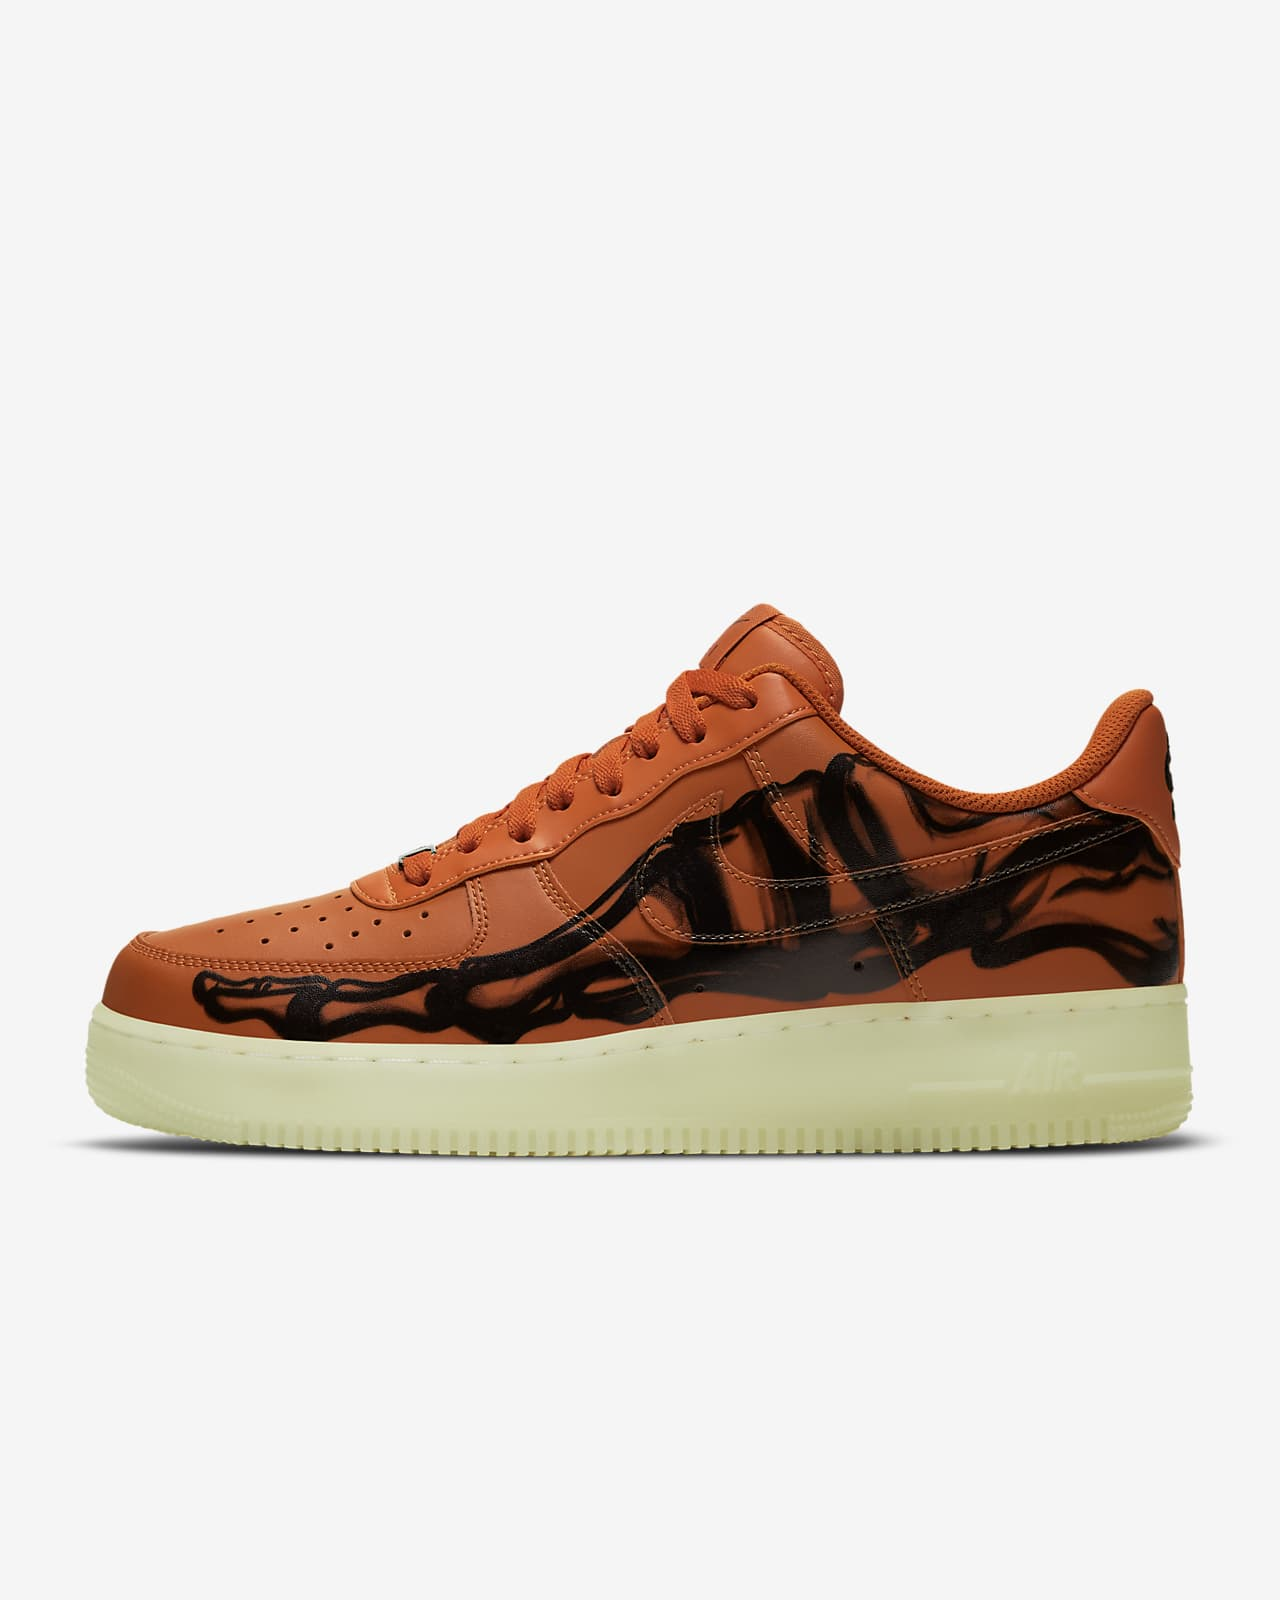 Nike Air Force 1 '07 Skeleton Men's Shoe